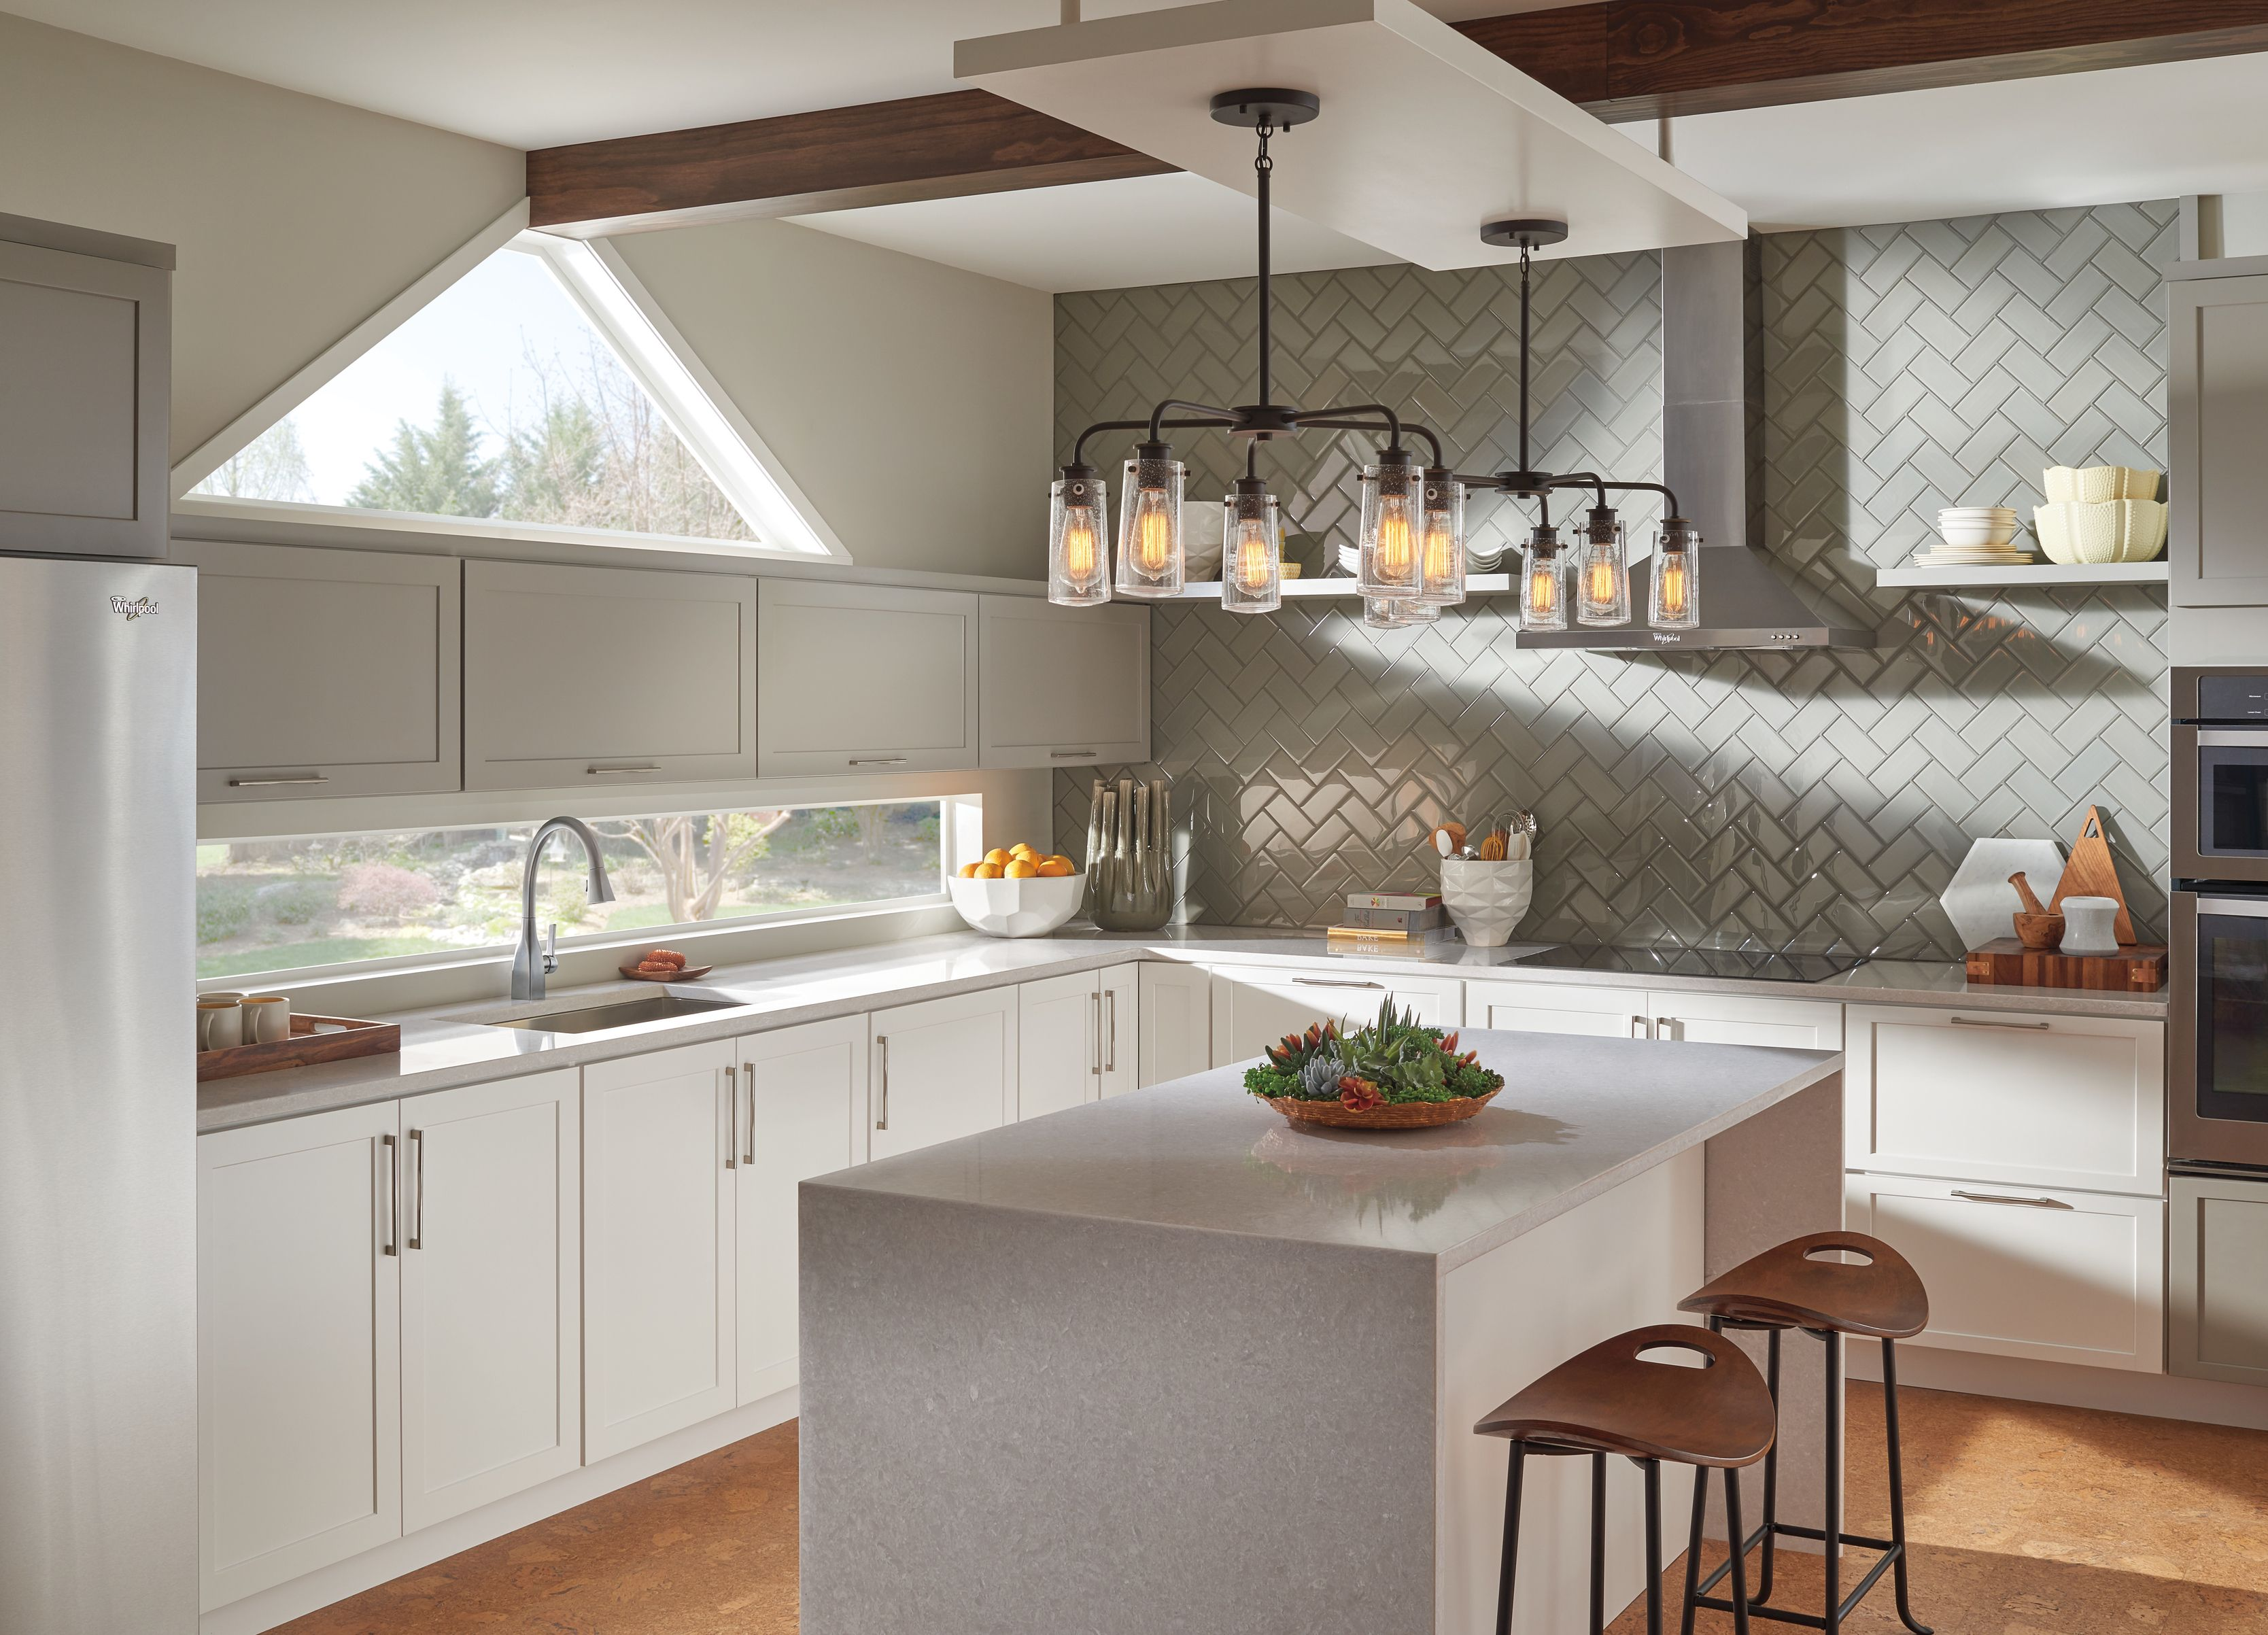 Exceptional Modern, Minimalist Kitchen With Chevron Patterned Grey Subway Tile  Backsplash. Wow! Love The Ideas